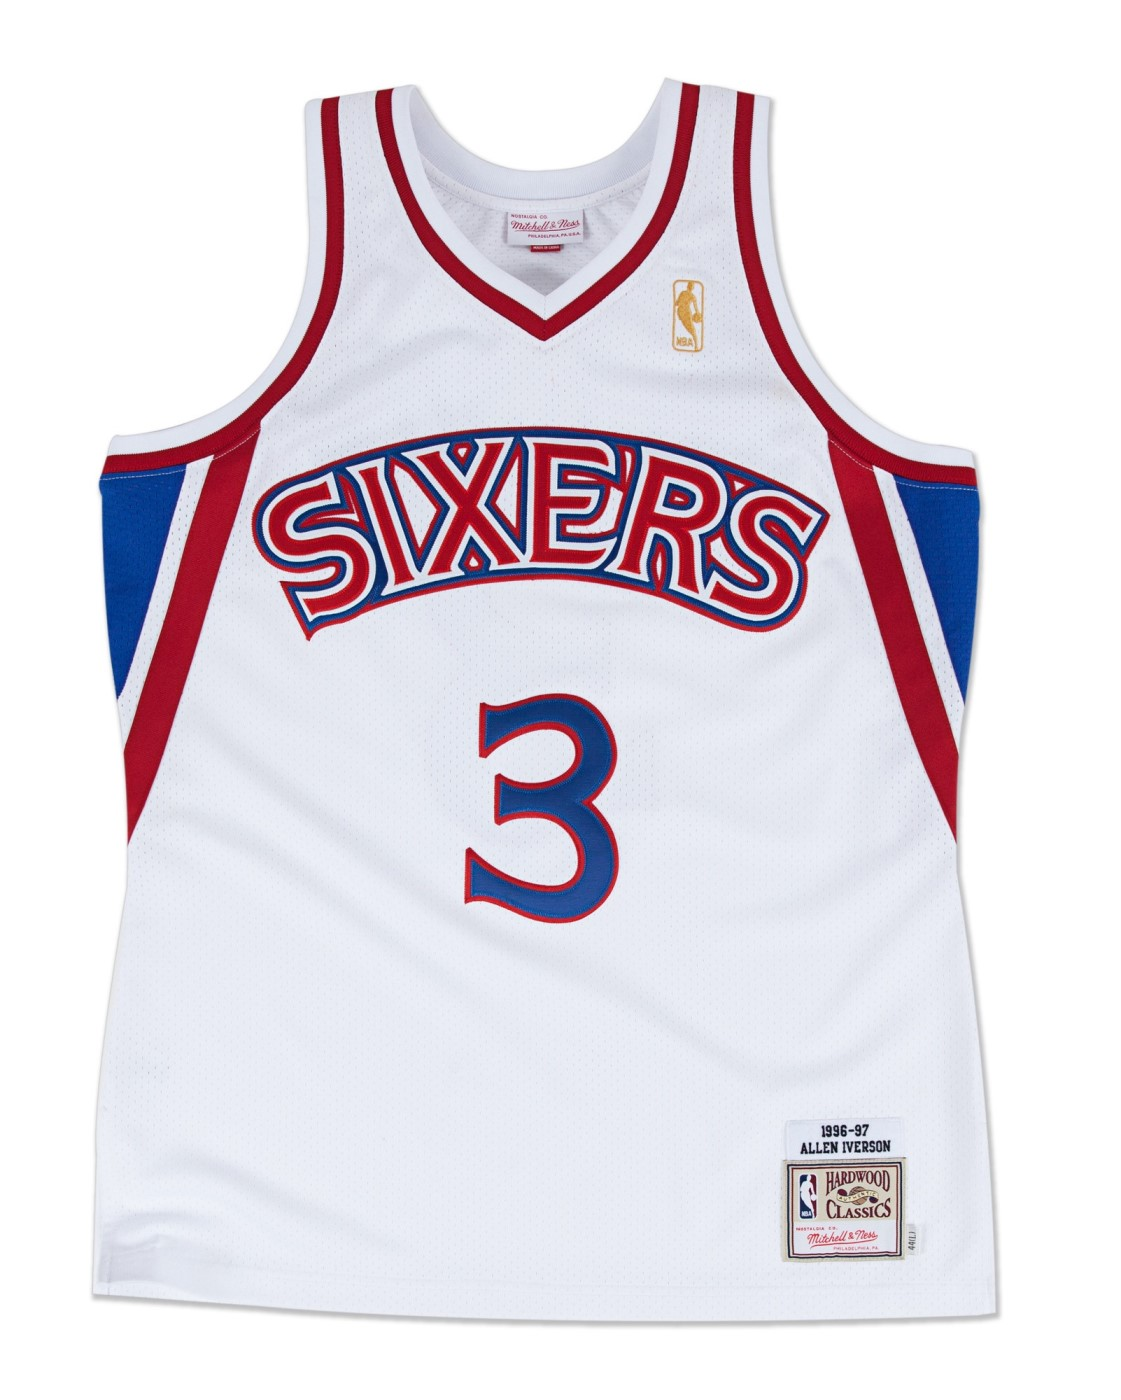 Allen Iverson Philadelphia 76ers Mitchell & Ness Authentic 1996 Home NBA Jersey